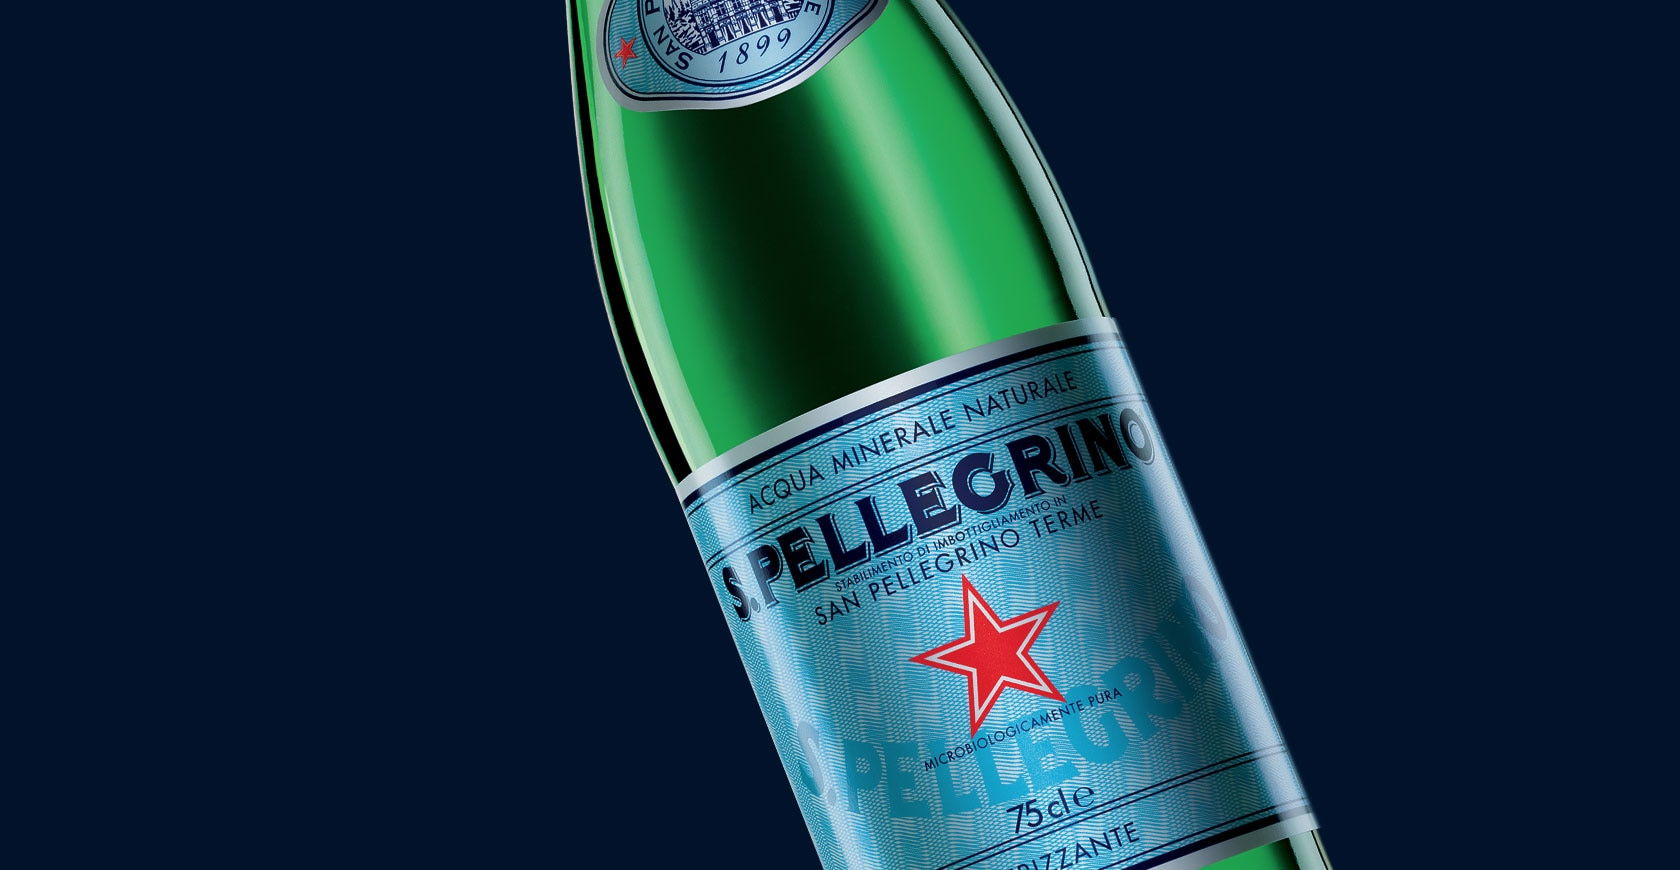 S.PELLEGRINO THE LEGEND